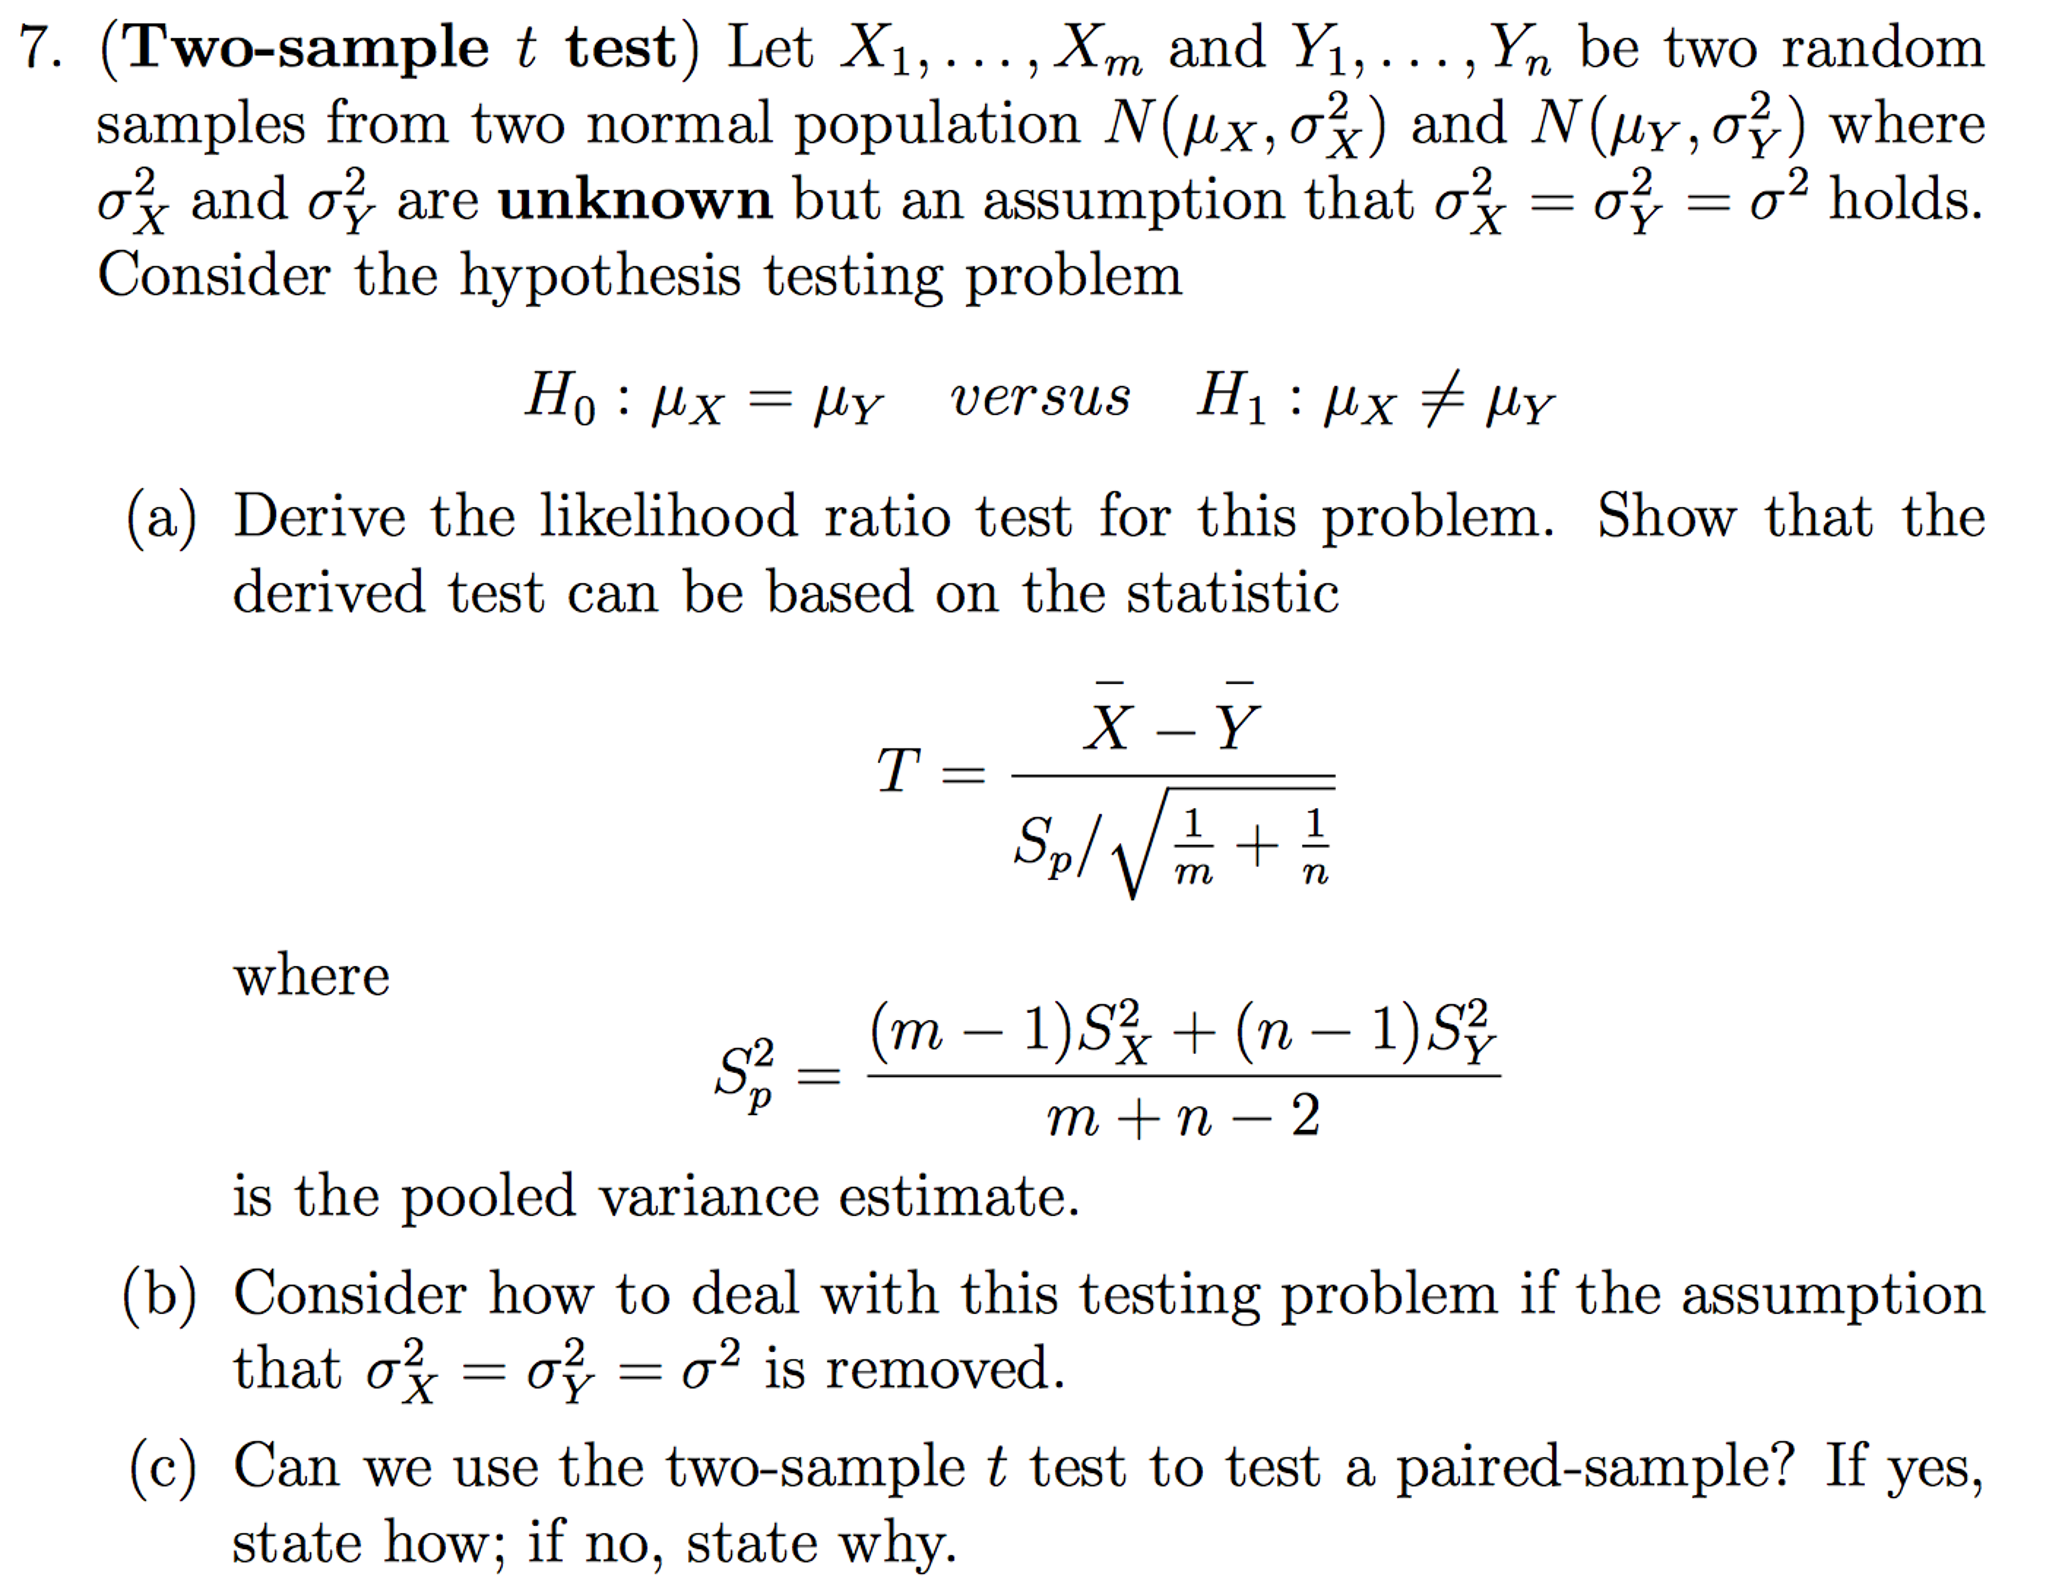 Solved: question: can we use the two-sample t test to test.